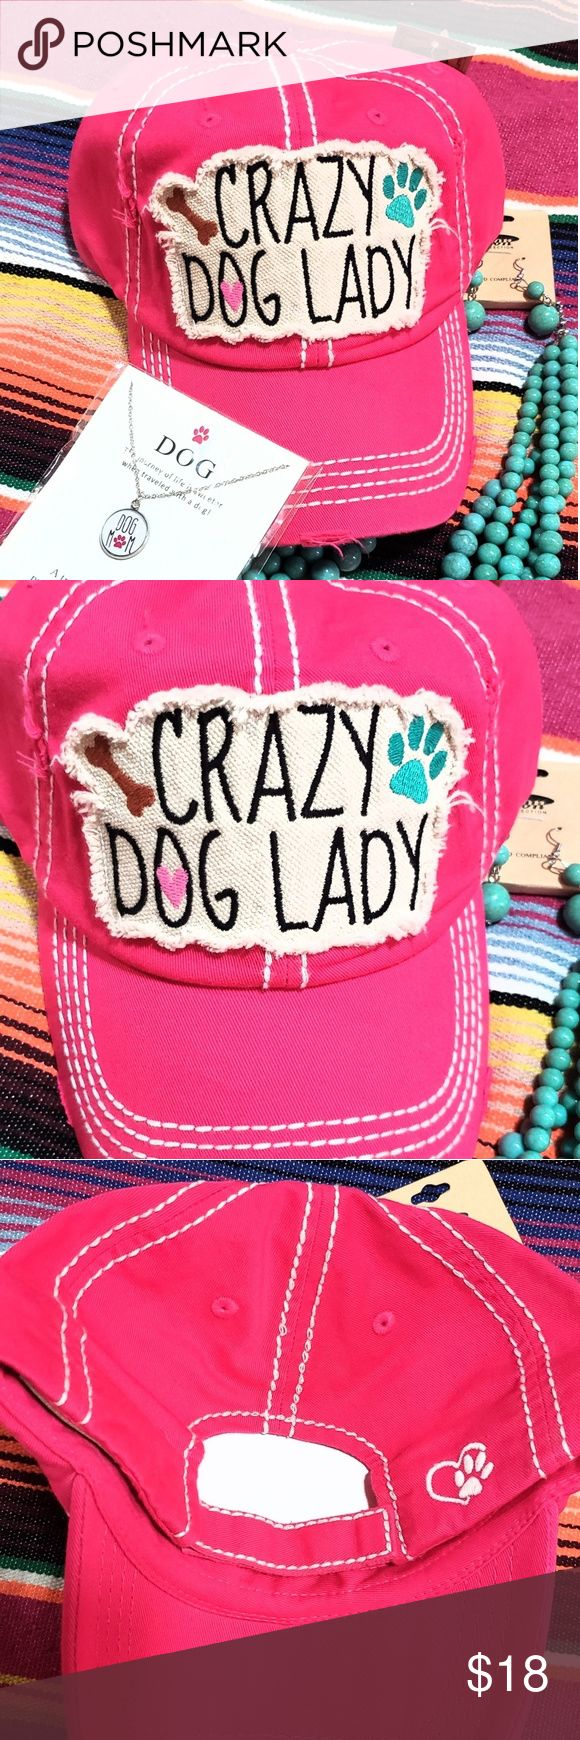 Crazy dog lady bright fuschia sassy hat cap worn Bright fuschia pink Crazy Dog Lady Paw print & bone accents Heart & pawprint on back Standard size Velcro closure HAT ONLY ACCESORIES & JEWELRY SOLD SEPARATELY  Desert wild child free spirit  Southwestern western style Cowgirl country girl rodeo Southern boutique clothing match *similar items available in my shop ❤Always happy to bundle Accessories Hats